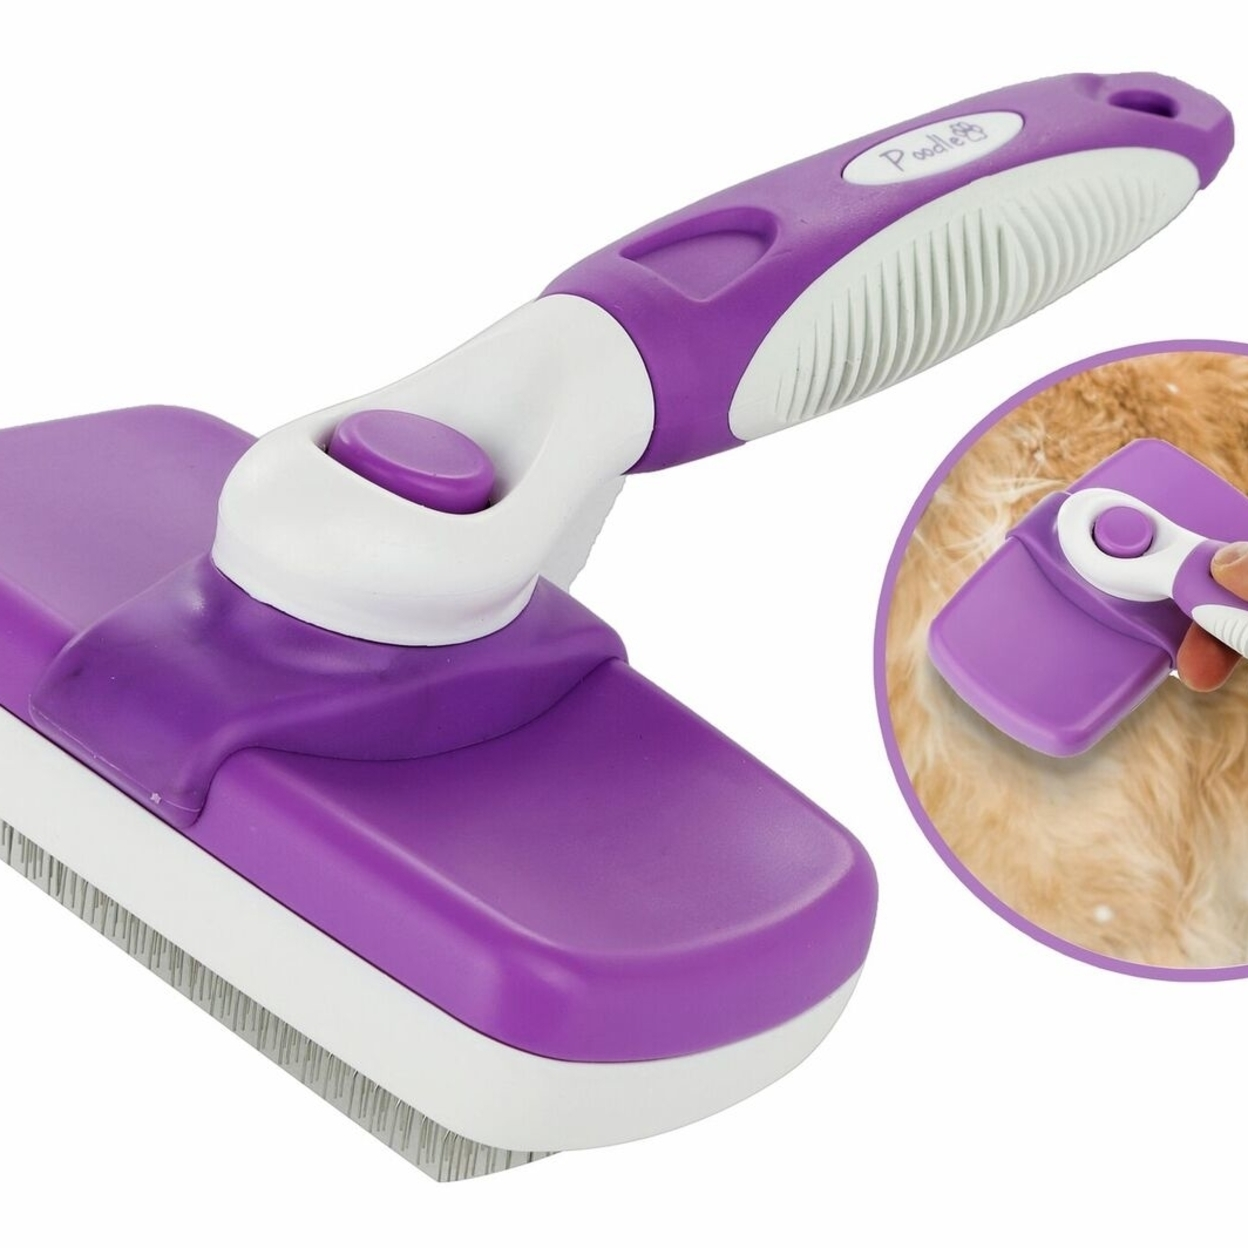 Poodle Pet Self Cleaning Slicker Brush for Dogs, Etc. Retractable, Easy Clean, Ergonomic Stainless Steel Metal Bristle Slicking Comb 59823d9df486b7330e372541